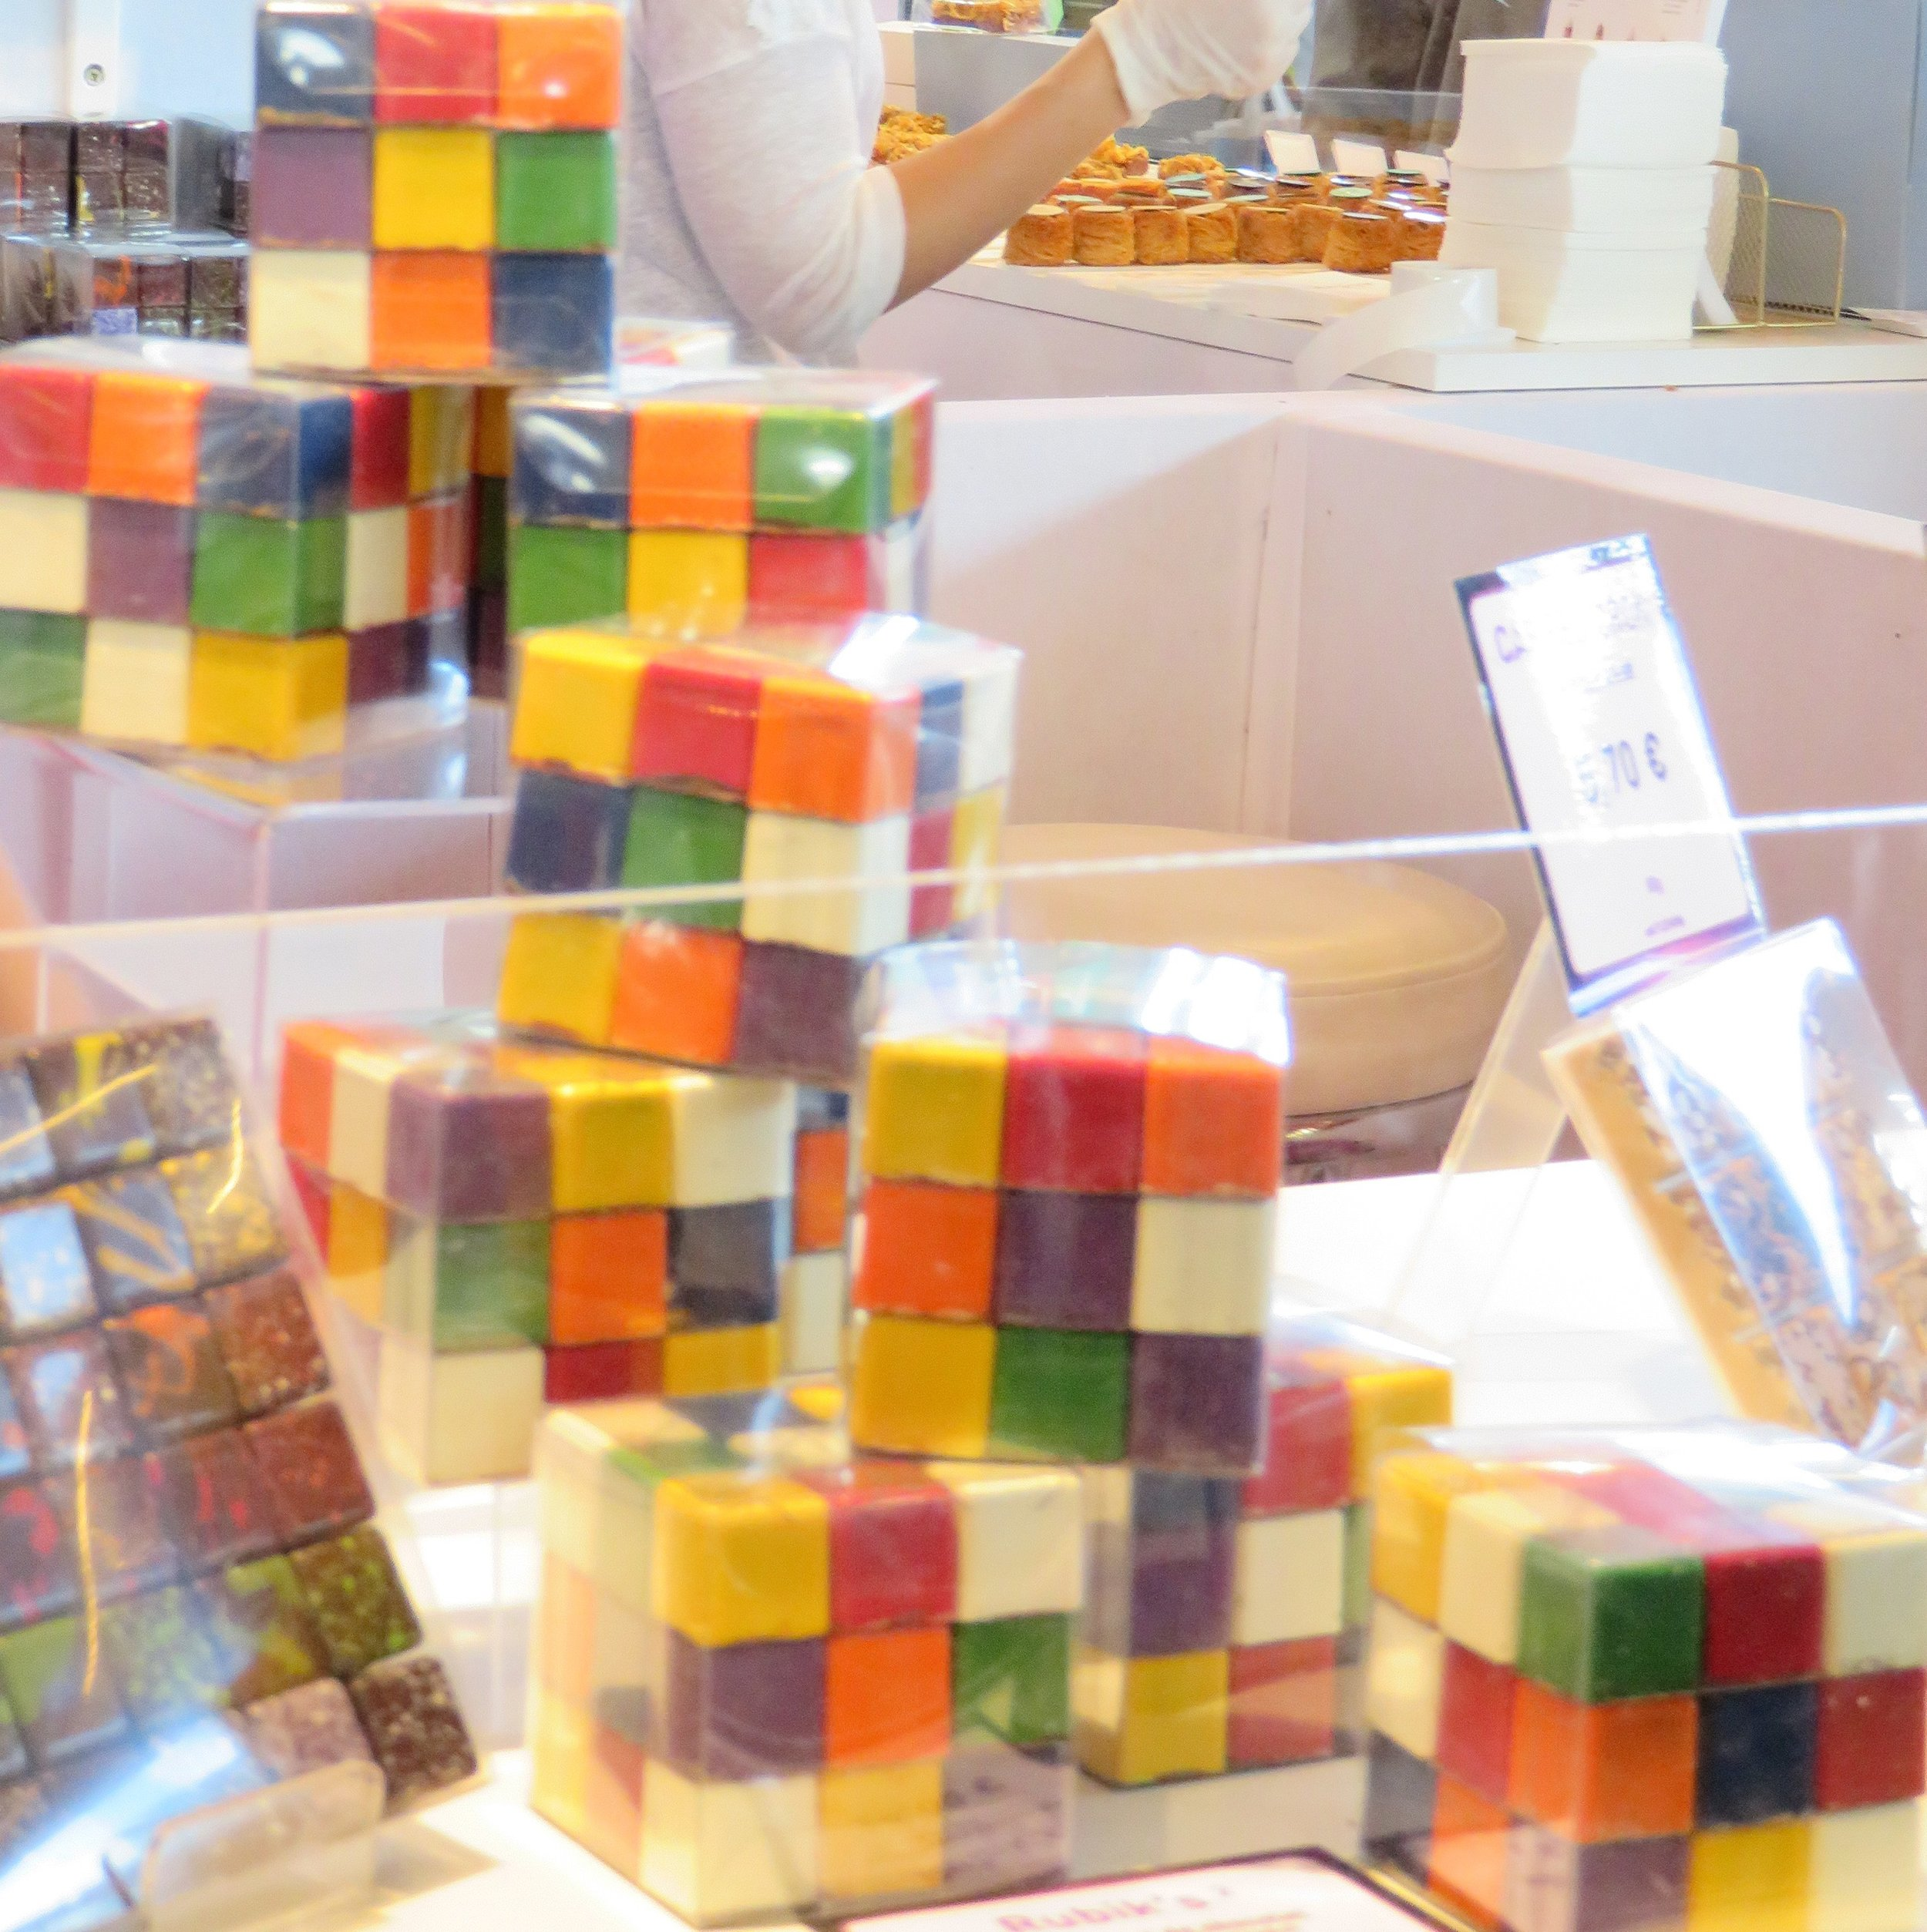 Rubik's Cube en chocolat au Salon du Chocolat 2017 - Parc des Expositions - Porte de Versailles. Photo by Sukkoria, Wikimedia Commons (cropped by RYC)